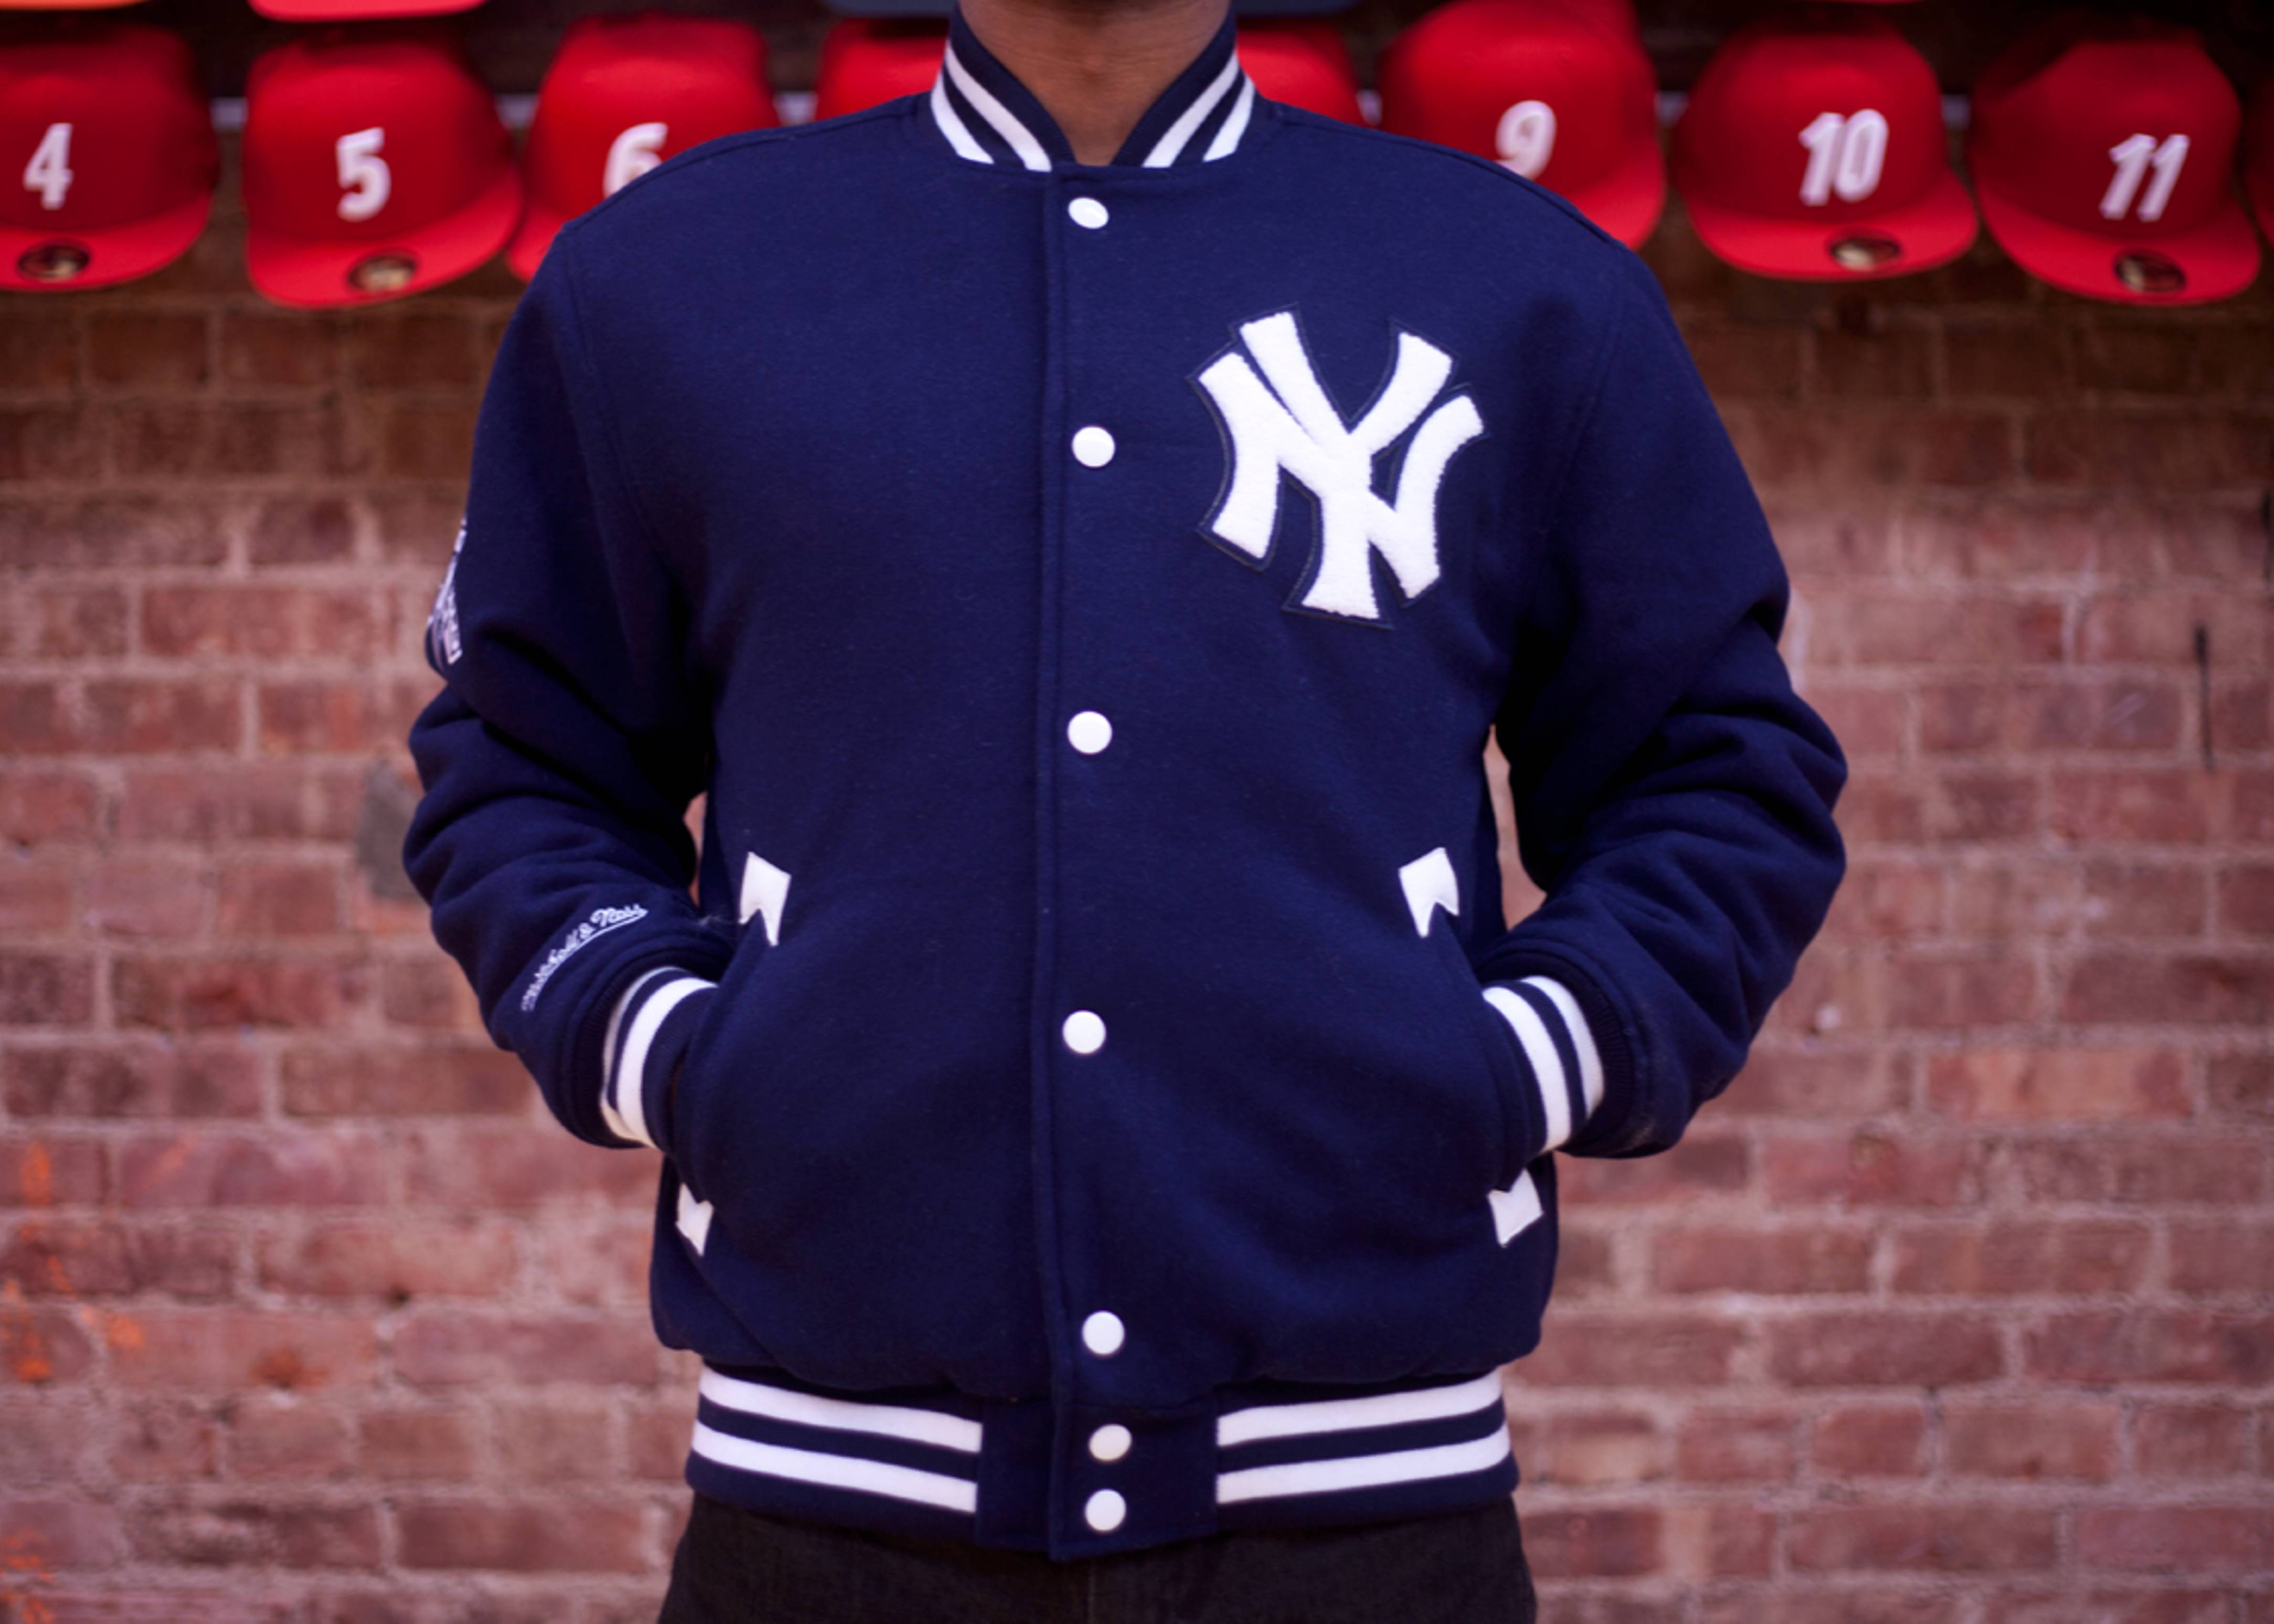 100% authentic 162f7 a3508 New York Yankees Wool Jacket - Mitchell & Ness - 14 - navy ...